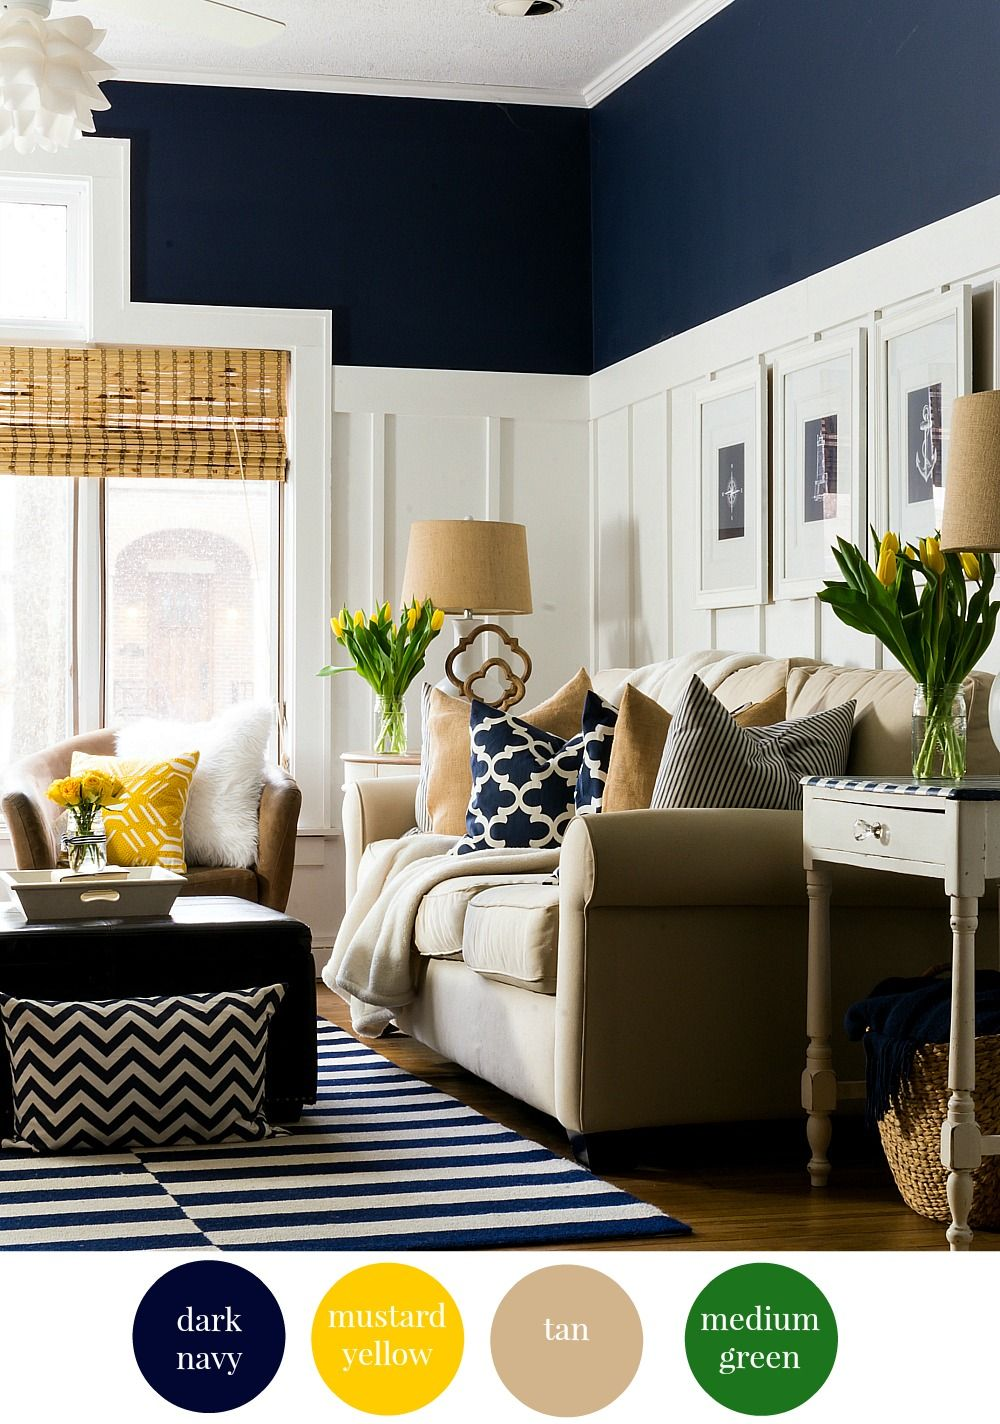 Choosing Paint Colors Is A Lot More Than Just Picking Shade You Like Each